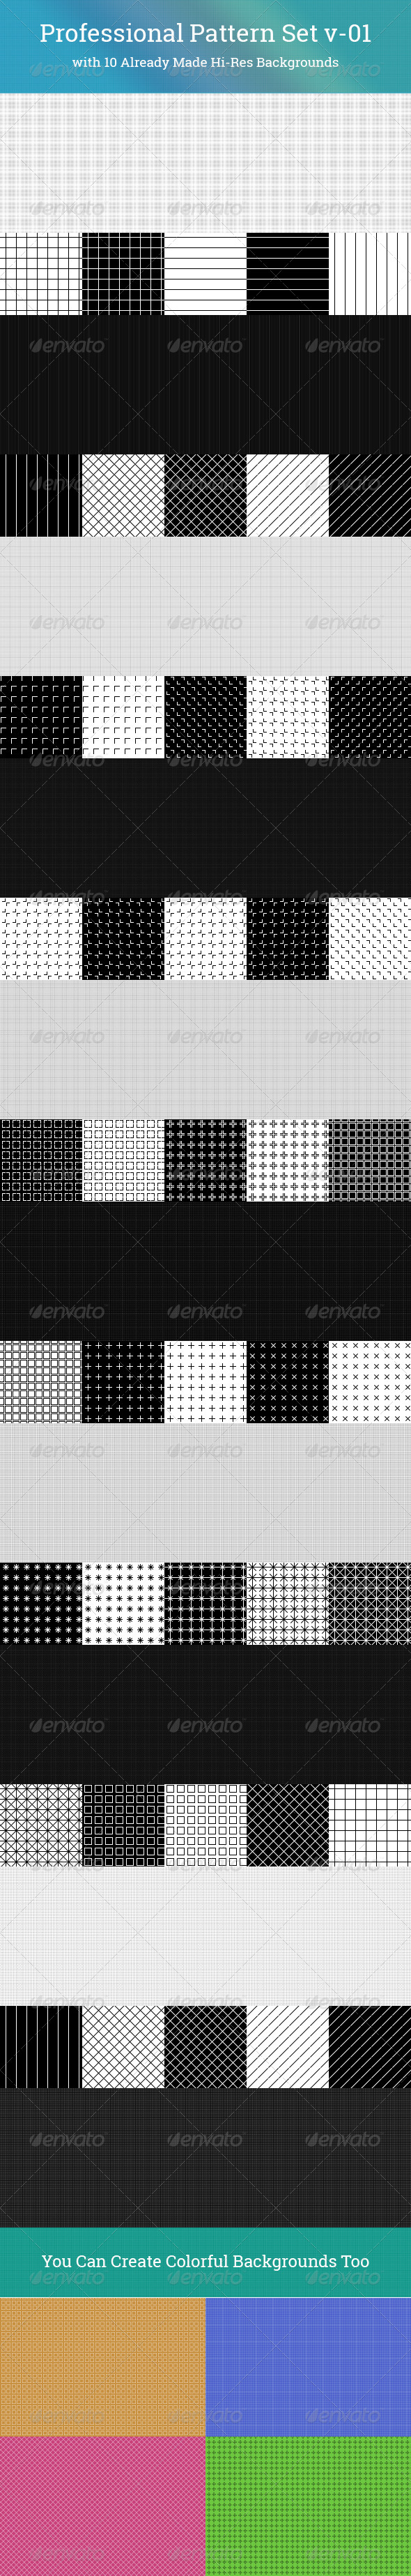 Professional Pattern Set v-01 - Patterns Backgrounds